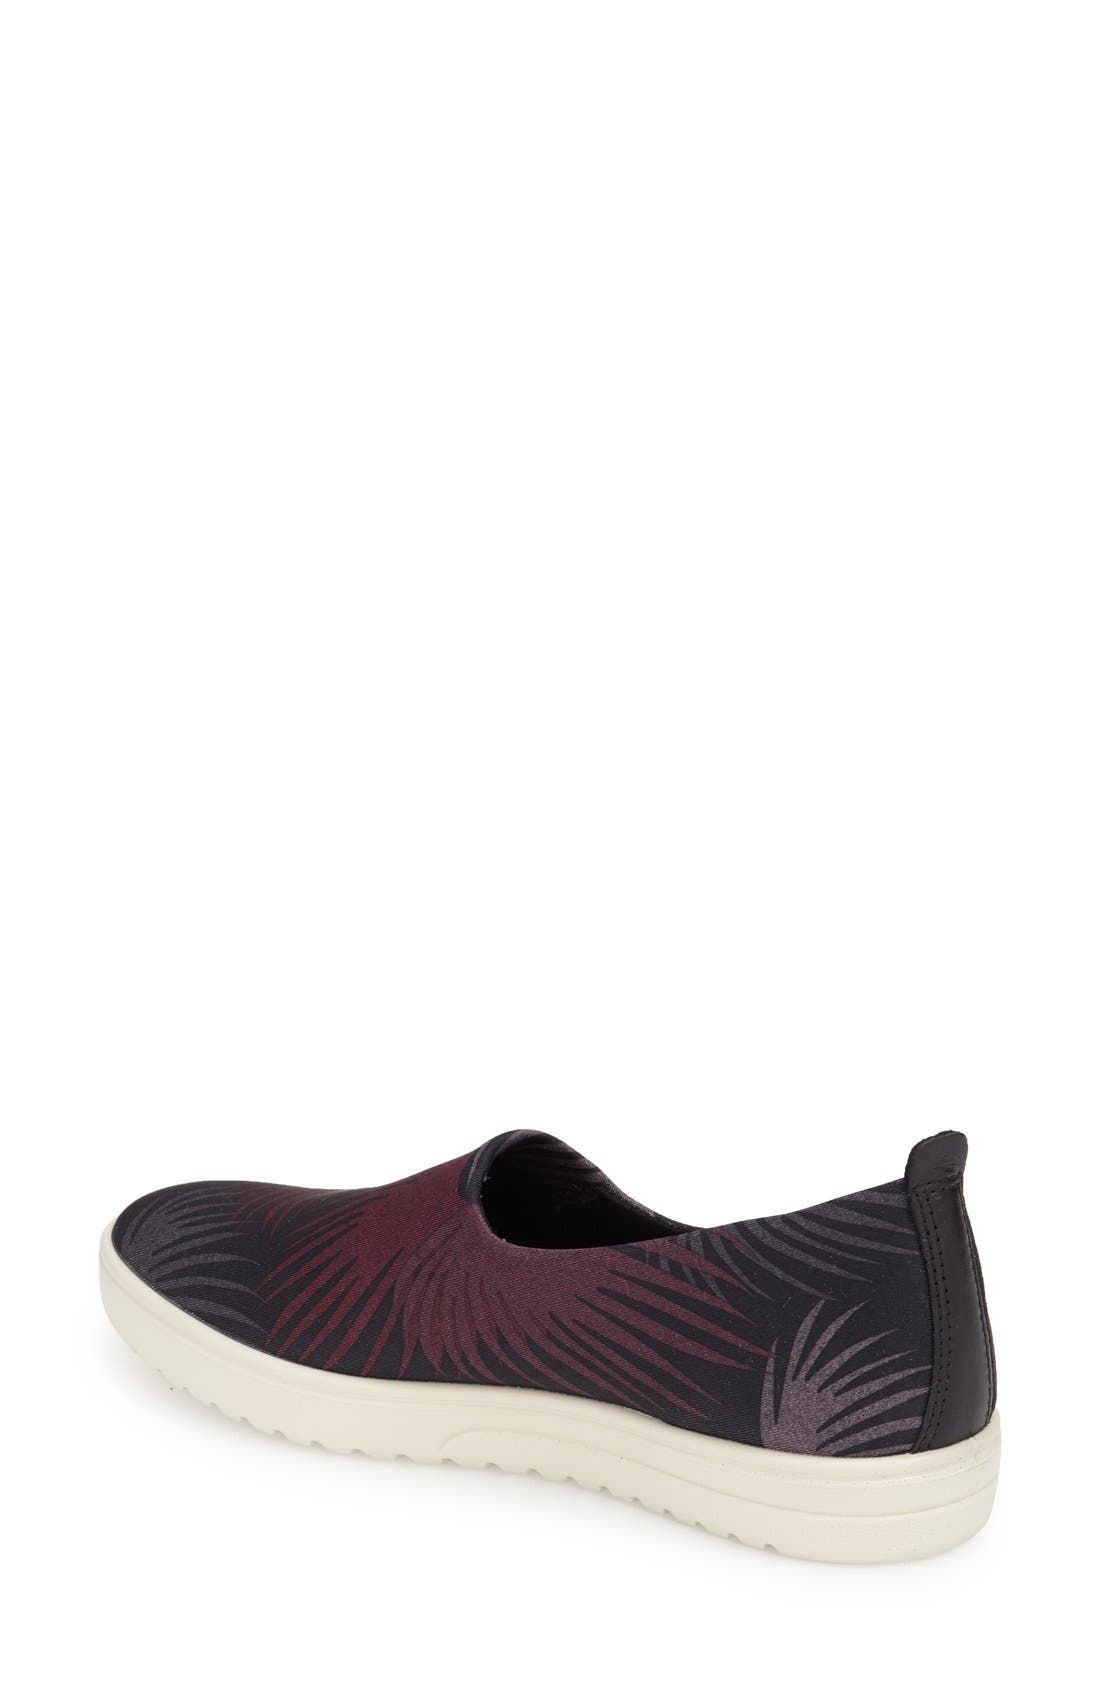 'Fara' Slip-On Sneaker,                             Alternate thumbnail 7, color,